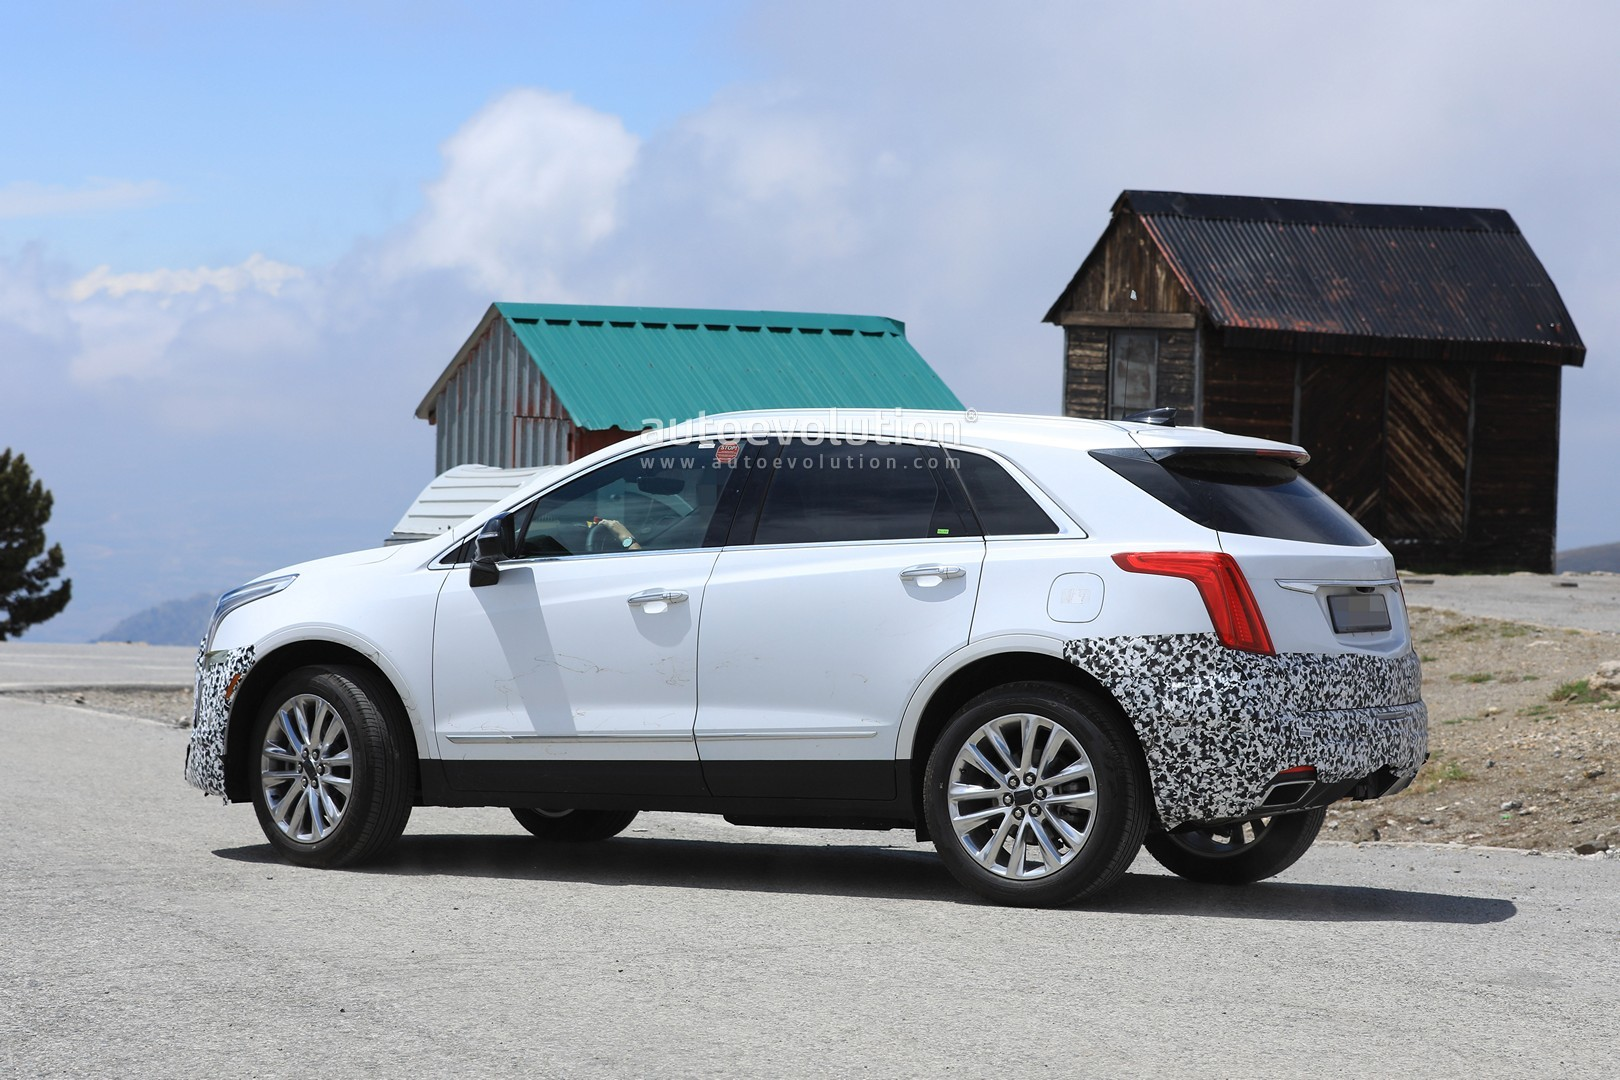 Cadillac Xt Facelift Prototype Spied In Europe on 2014 Cadillac Cts